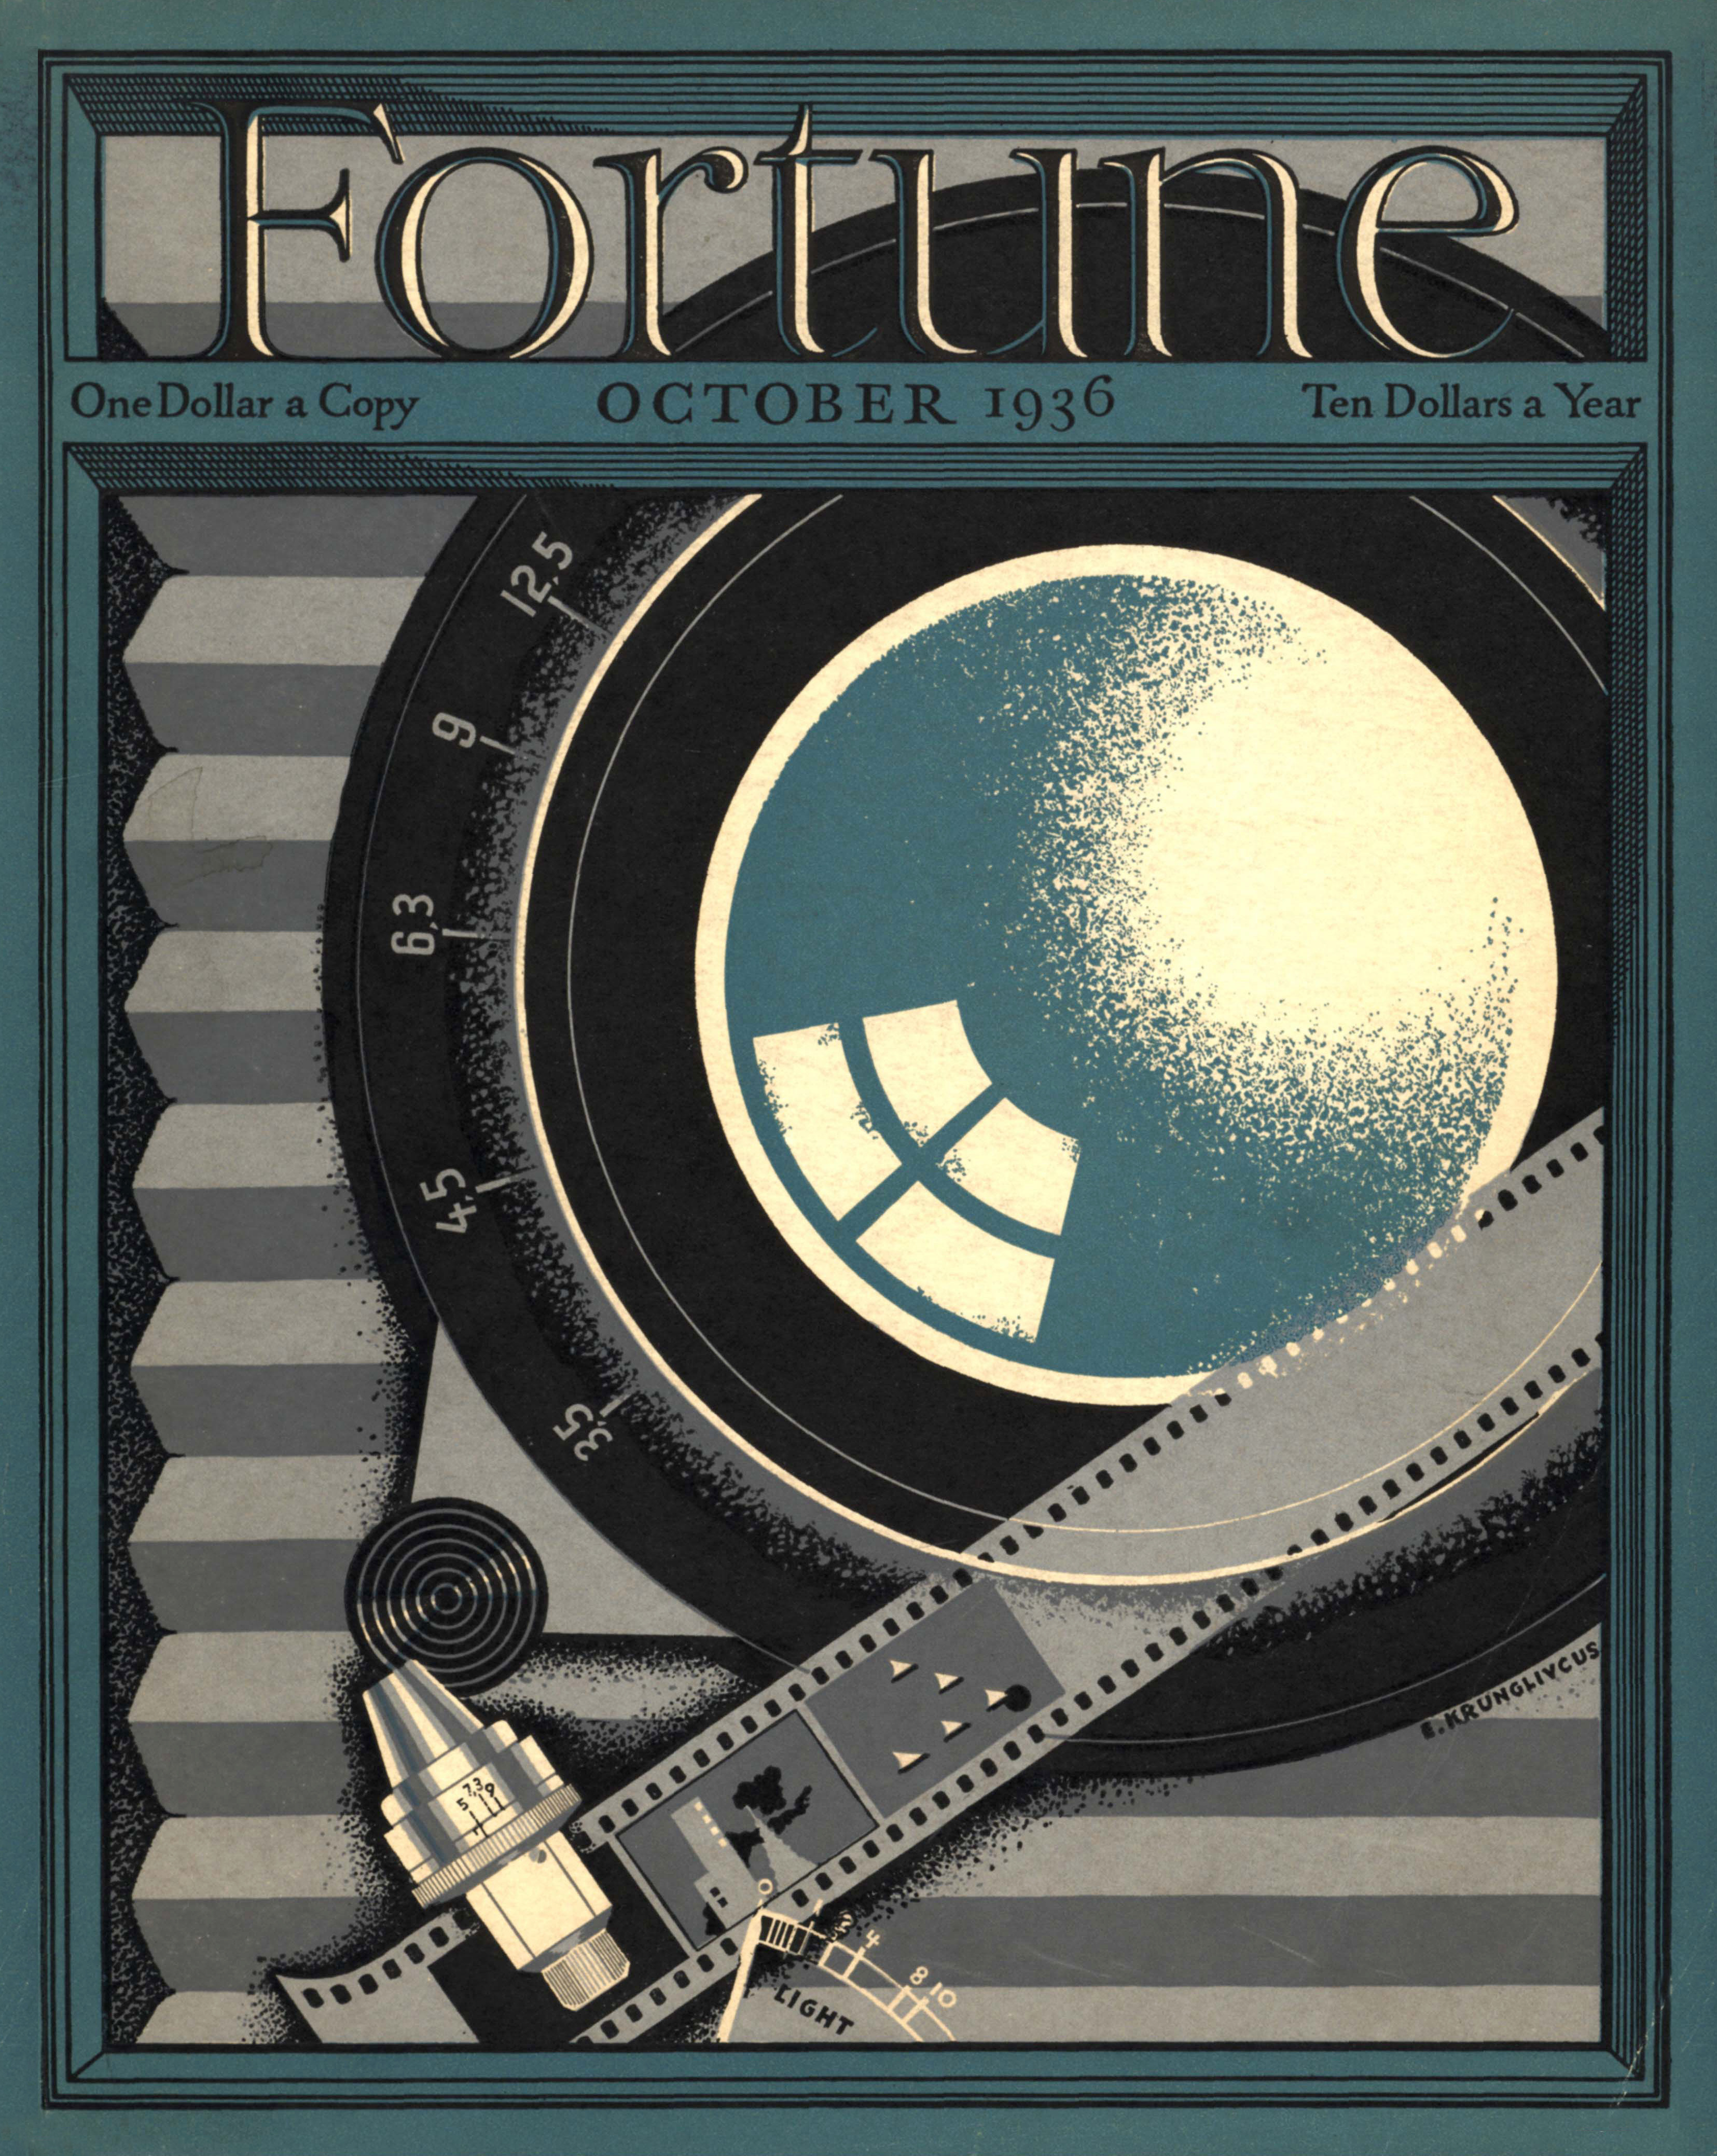 Fortune magazine cover October 1936 issue